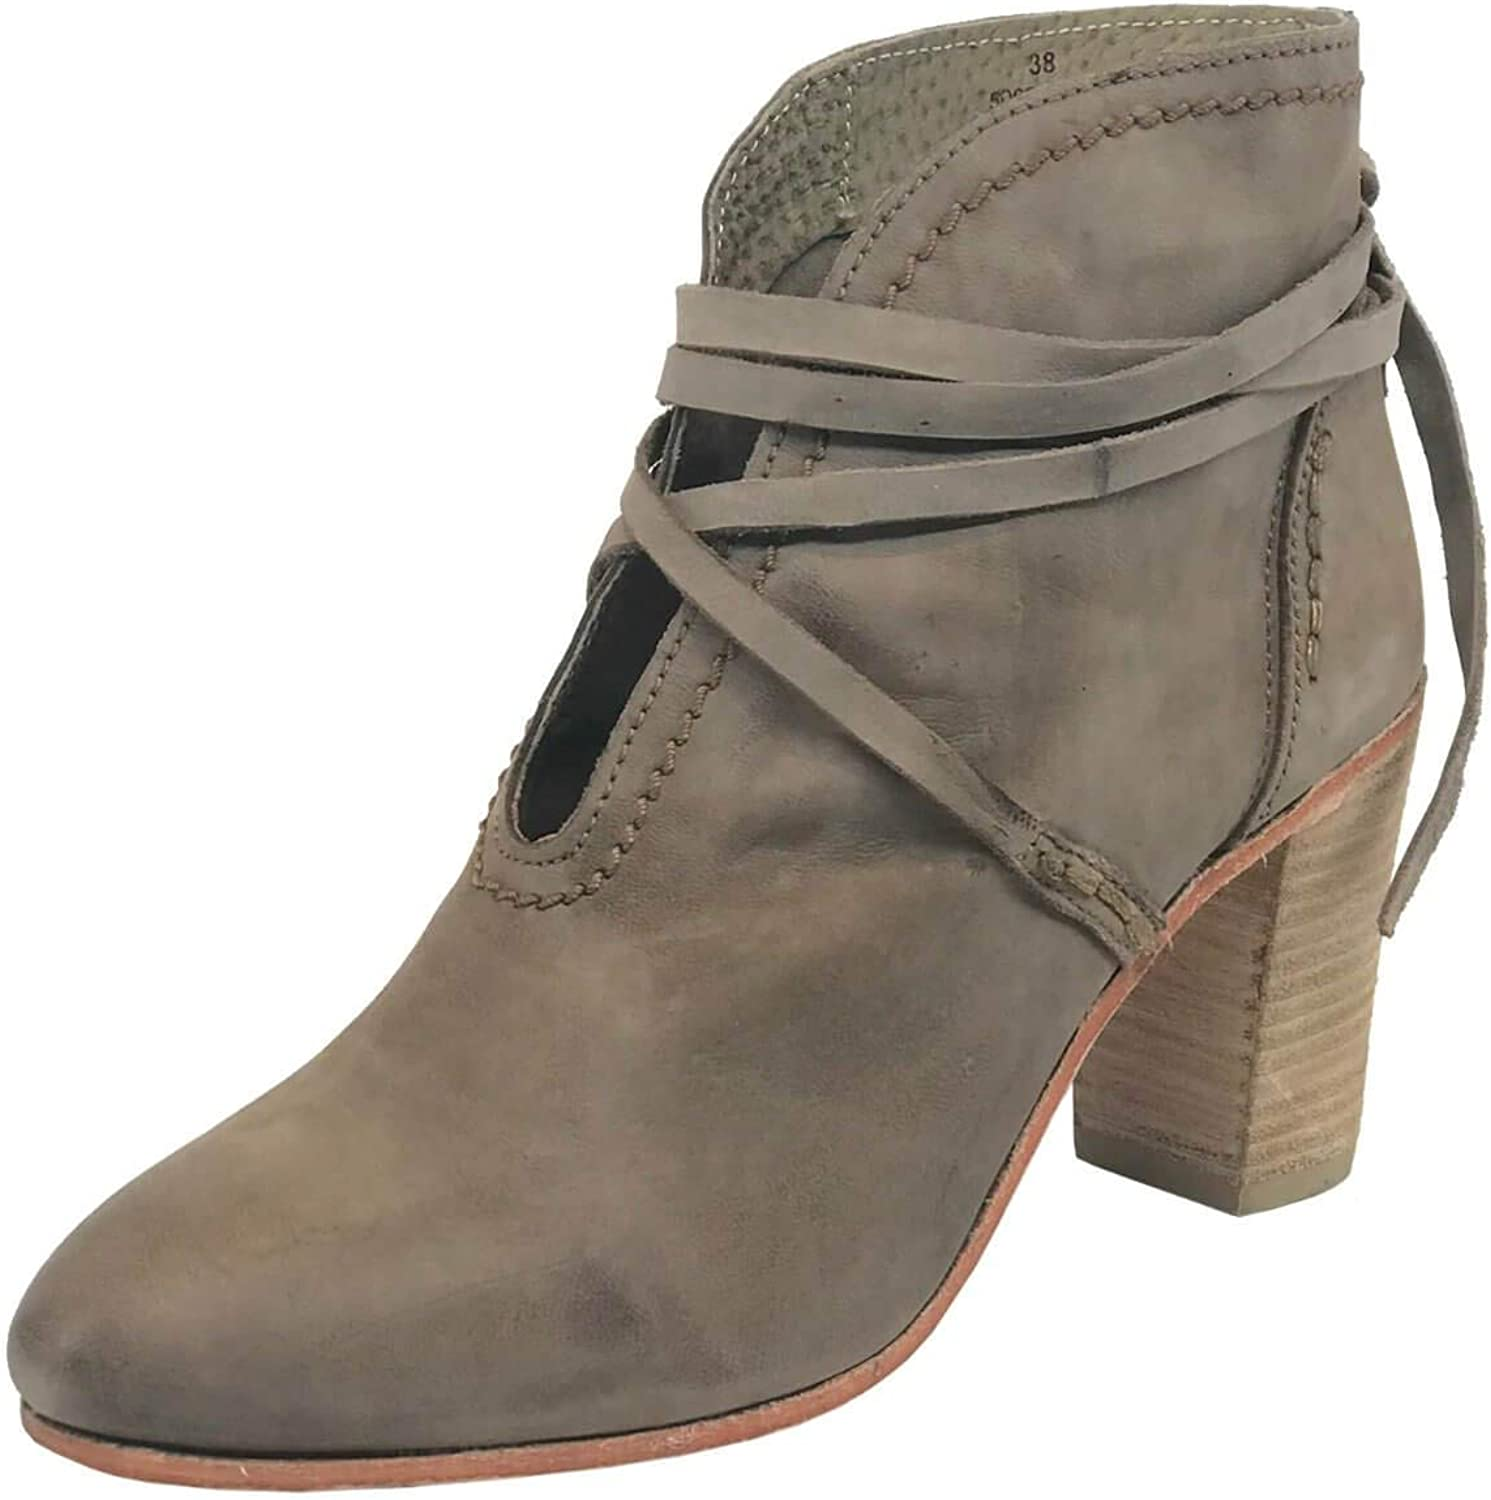 Free People Womens Wrap Around Heel Boot Leather Closed Toe Ankle Fashion Boots